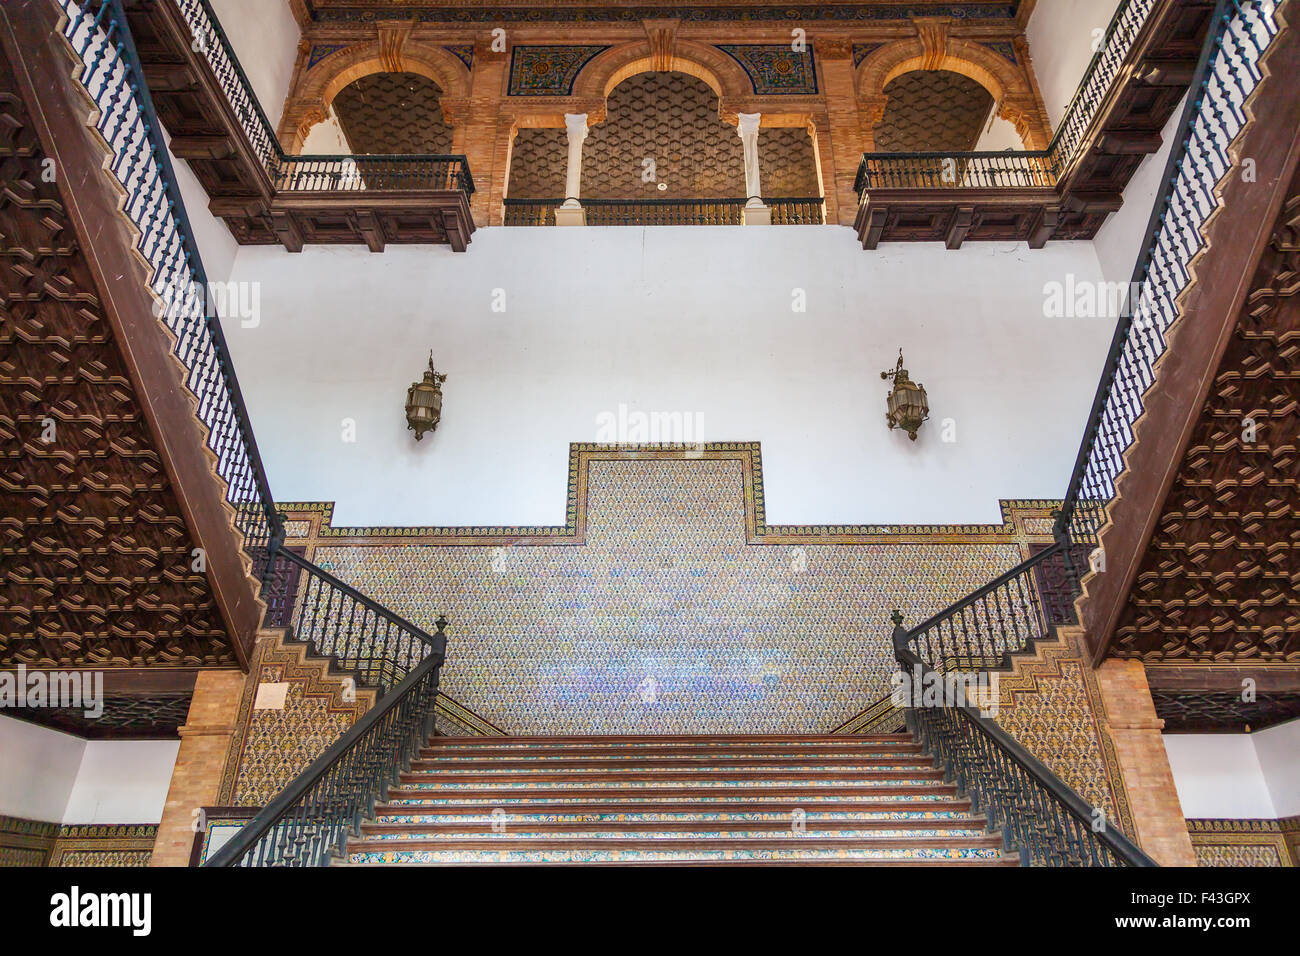 Spanish Renaissance Revival Staircase - Stock Image